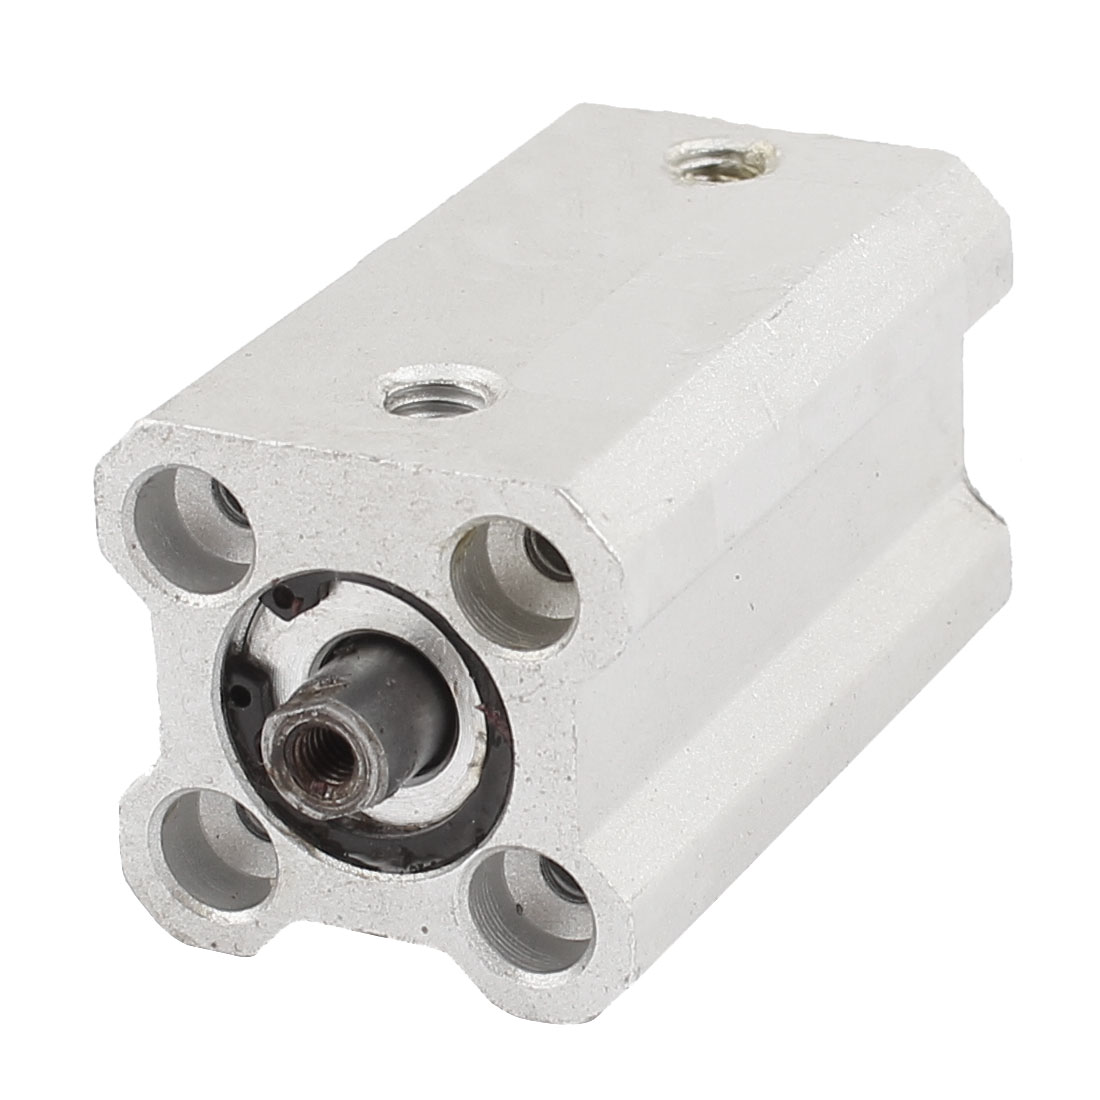 KCQ2B12-25 25mm Stroke 12mm Bore Pneumatic Compact Air Cylinder